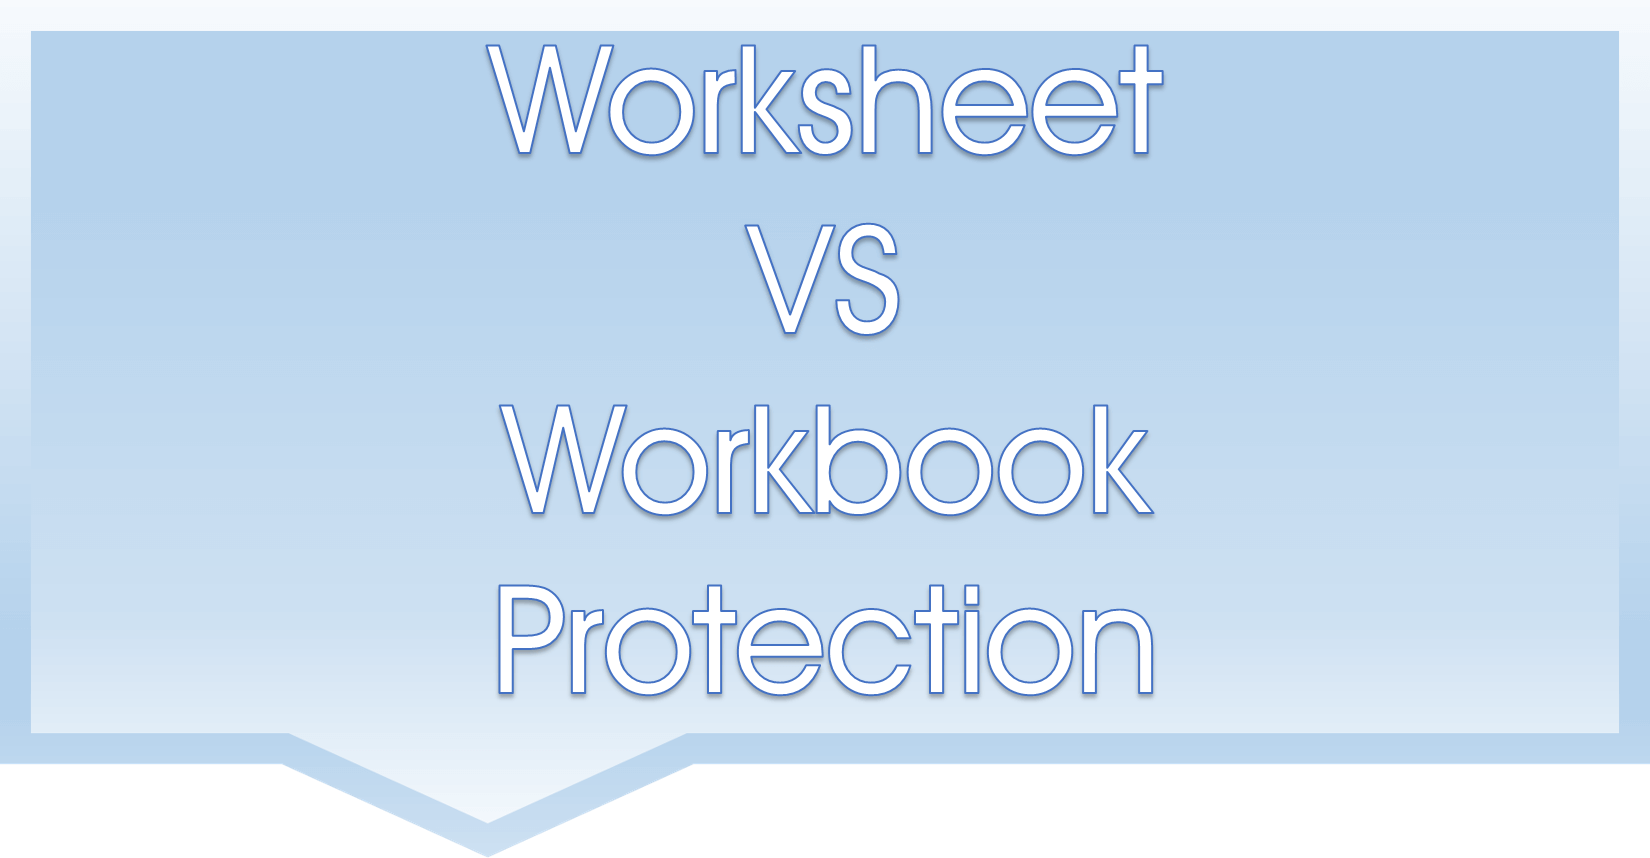 Excel Security Worksheet Vs Workbook Level Protection